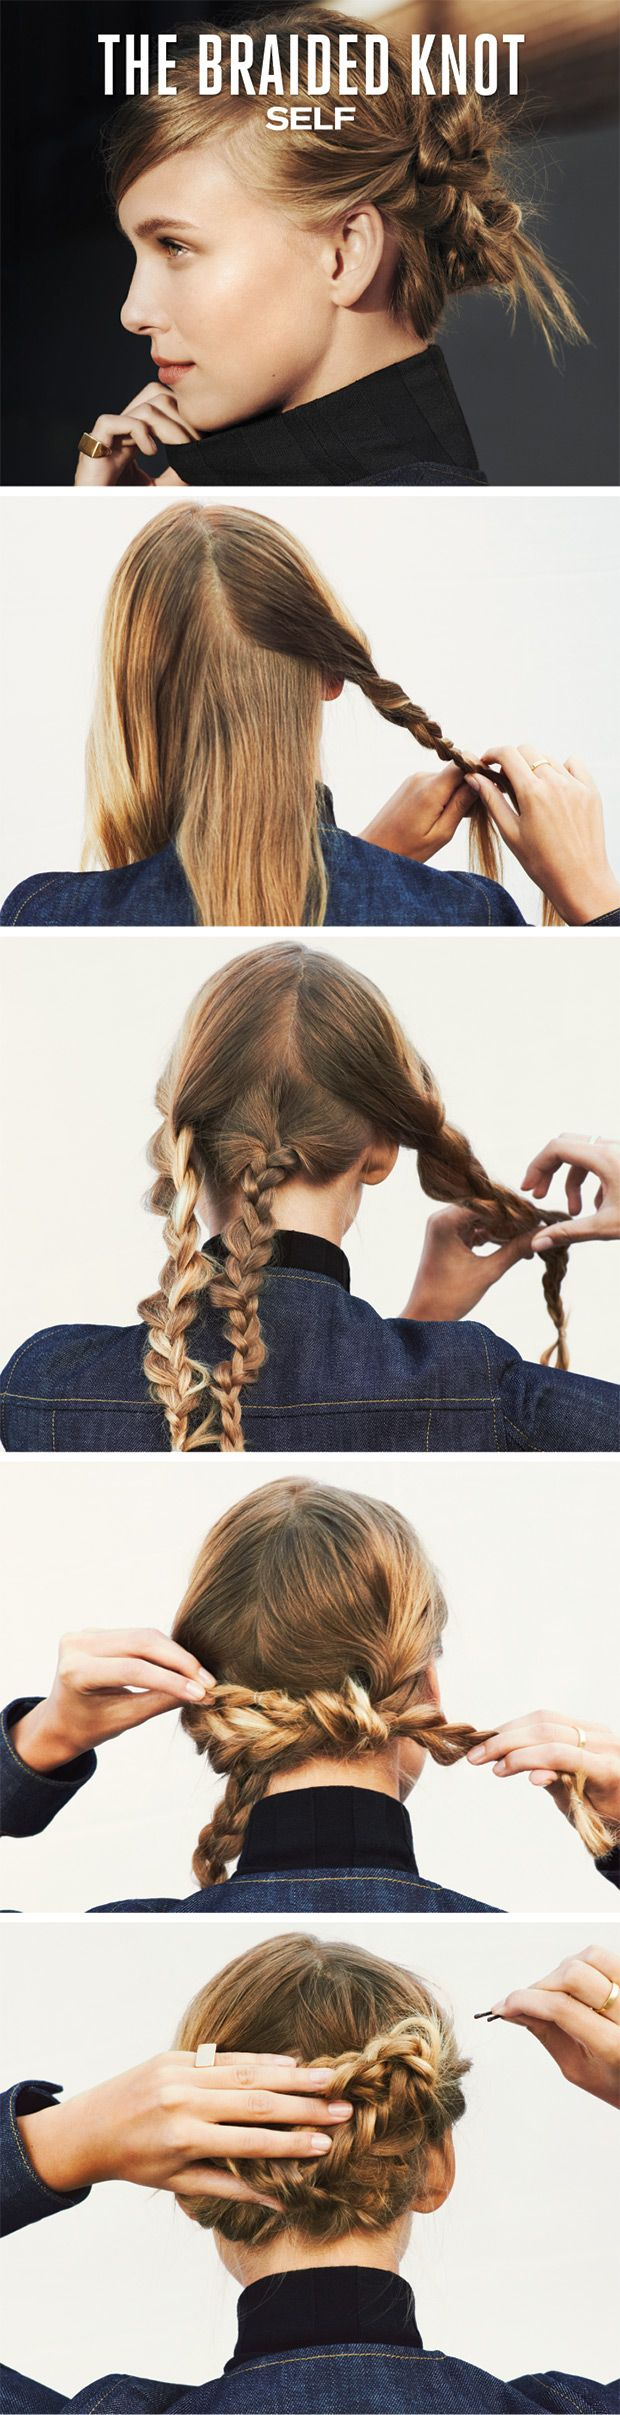 PREP IT: Mist a texturizing spray like Kérastase V.I.P., $37, on dry hair. Section hair into two parts from ear to ear: one upper half, one lower half. Divide upper half down the middle in two. Braid all three sections.    LOOSEN IT: After fastening each braid with clear elastics, use fingers to gently pull the edges a little. This will create a soft, lived-in effect. Work slowly to keep braids from unraveling.    KNOT IT: Tie top two braids into a loop just above the nape of your n